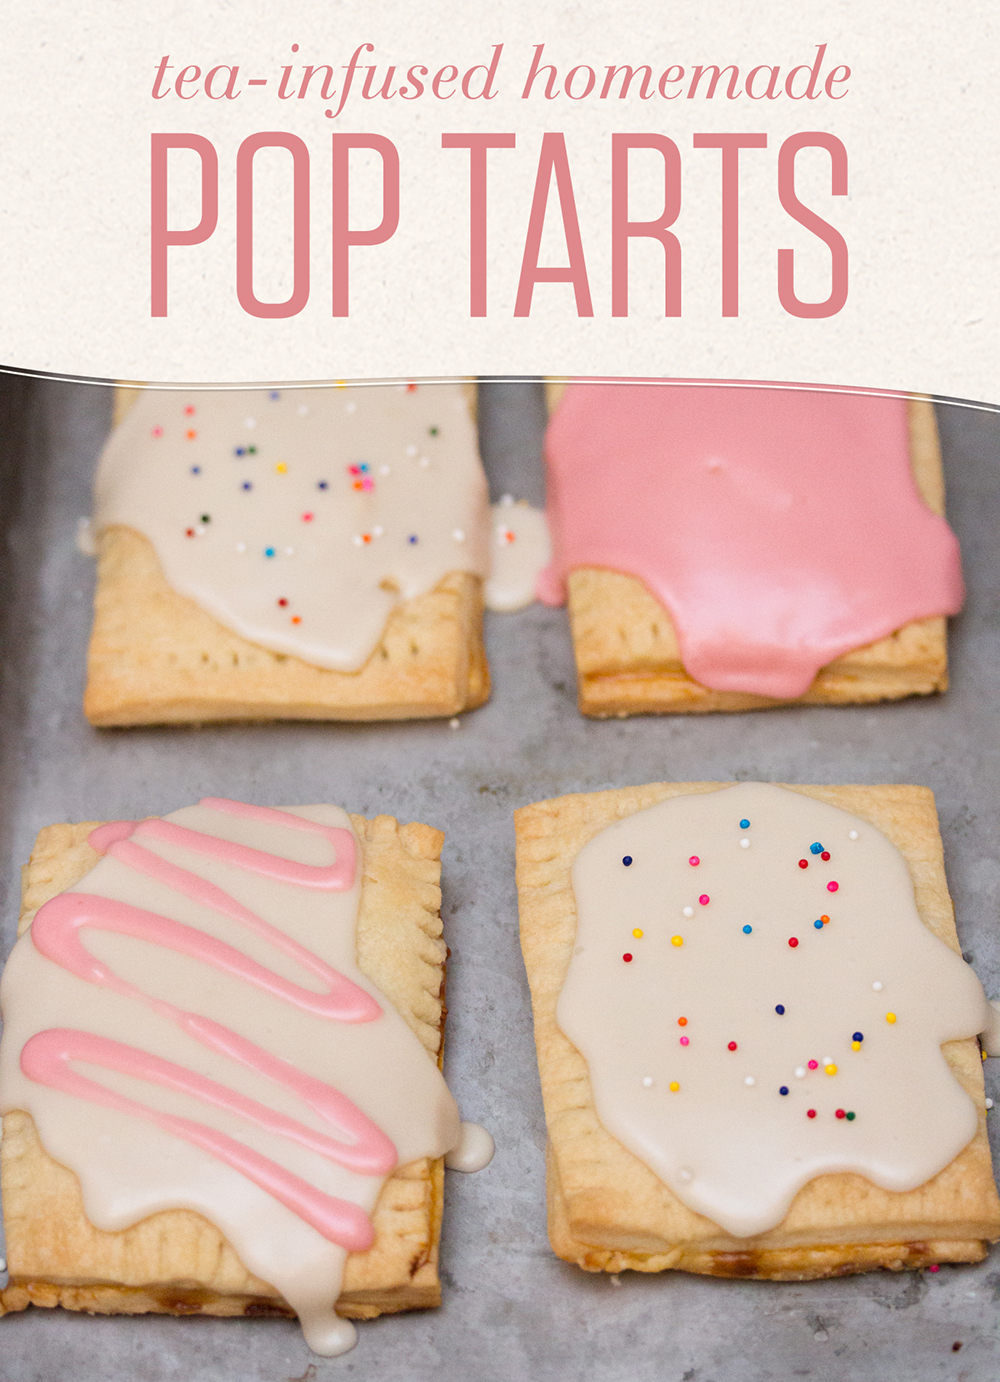 These raspberry and green tea-filled homemade pop tarts have an antioxidant bonus!